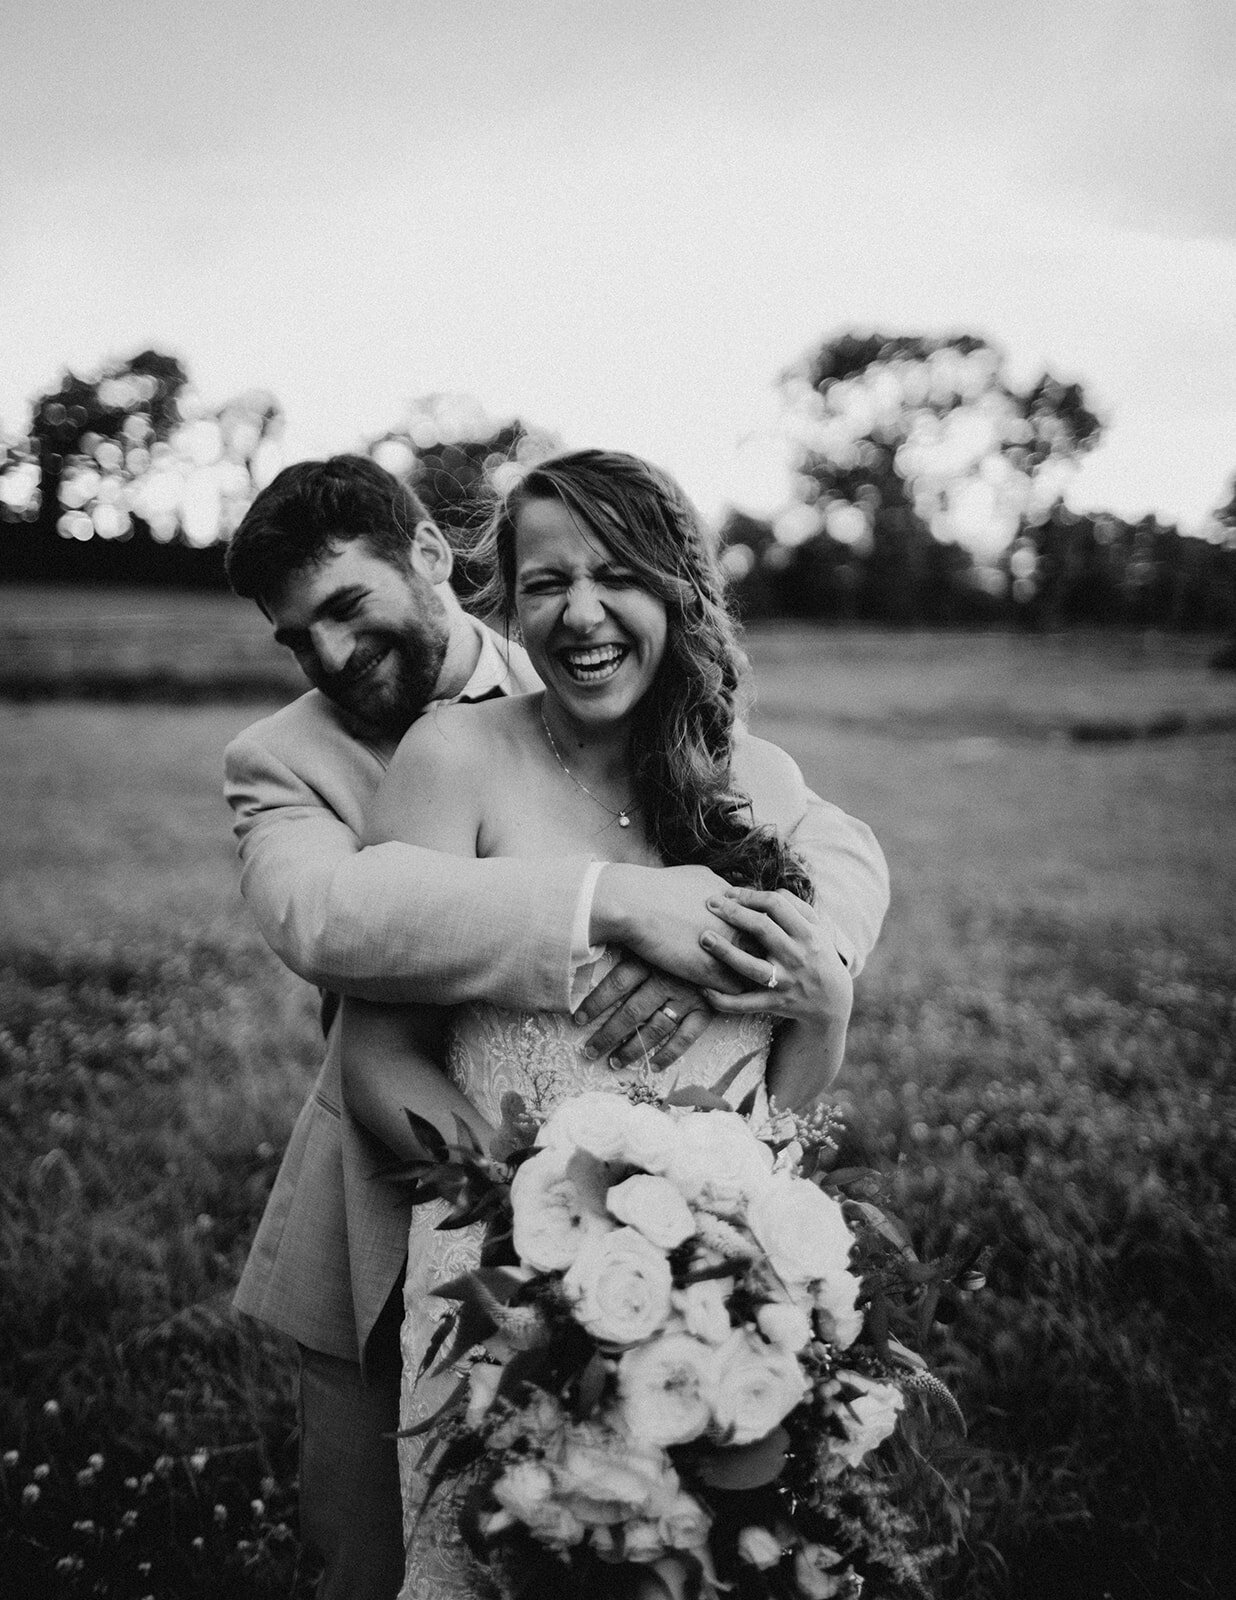 wedding at white chimneys wedding venue near lancaster pa by philadelphia wedding photographer bobbi phelps